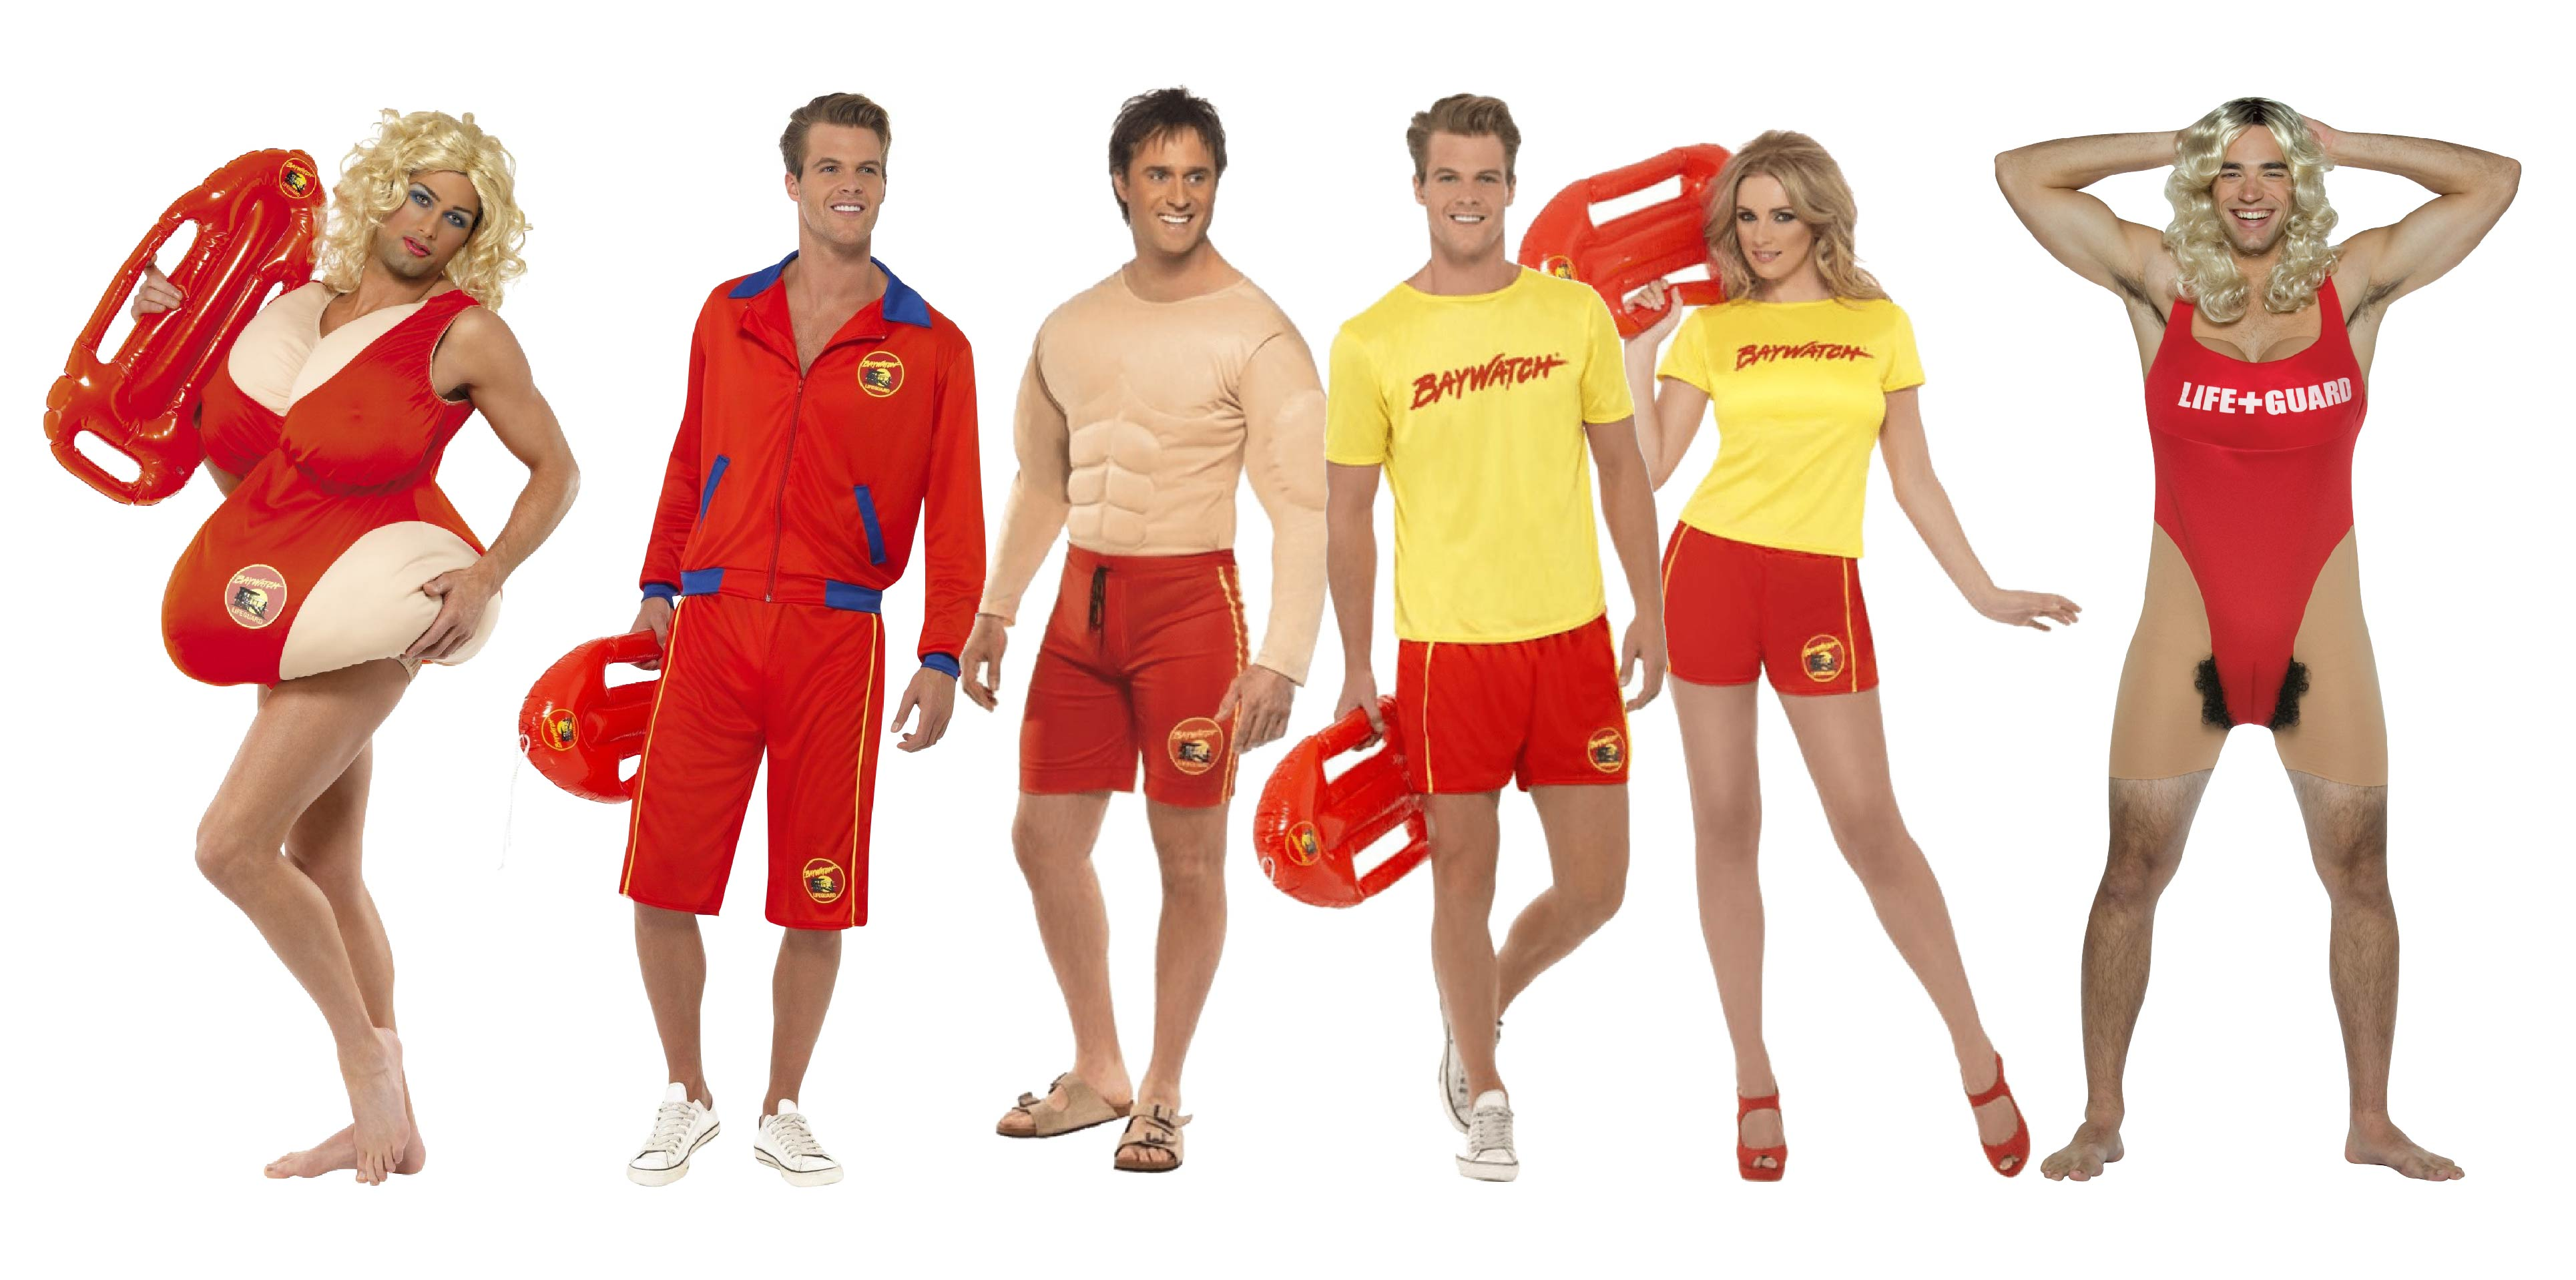 People wearing group Baywatch fancy dress.